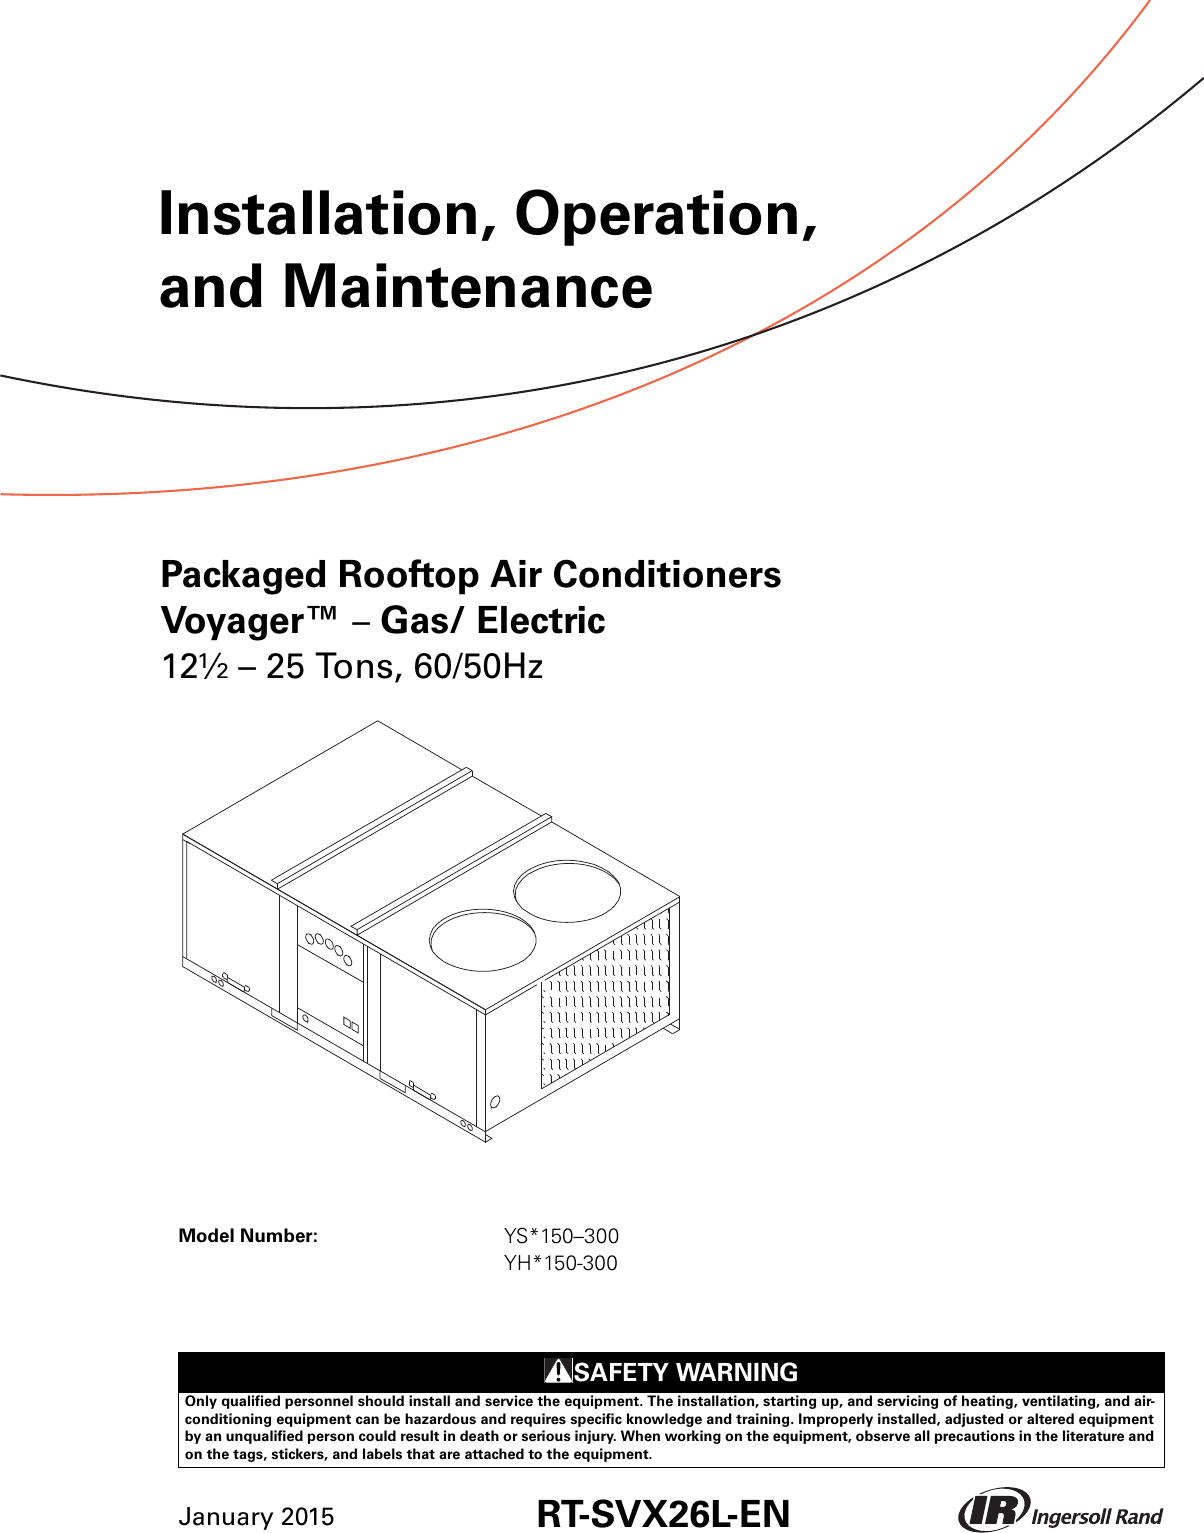 Trane Voyager 12 5 To 25 Tons Installation And Maintenance Manual Packaged Rooftop Air